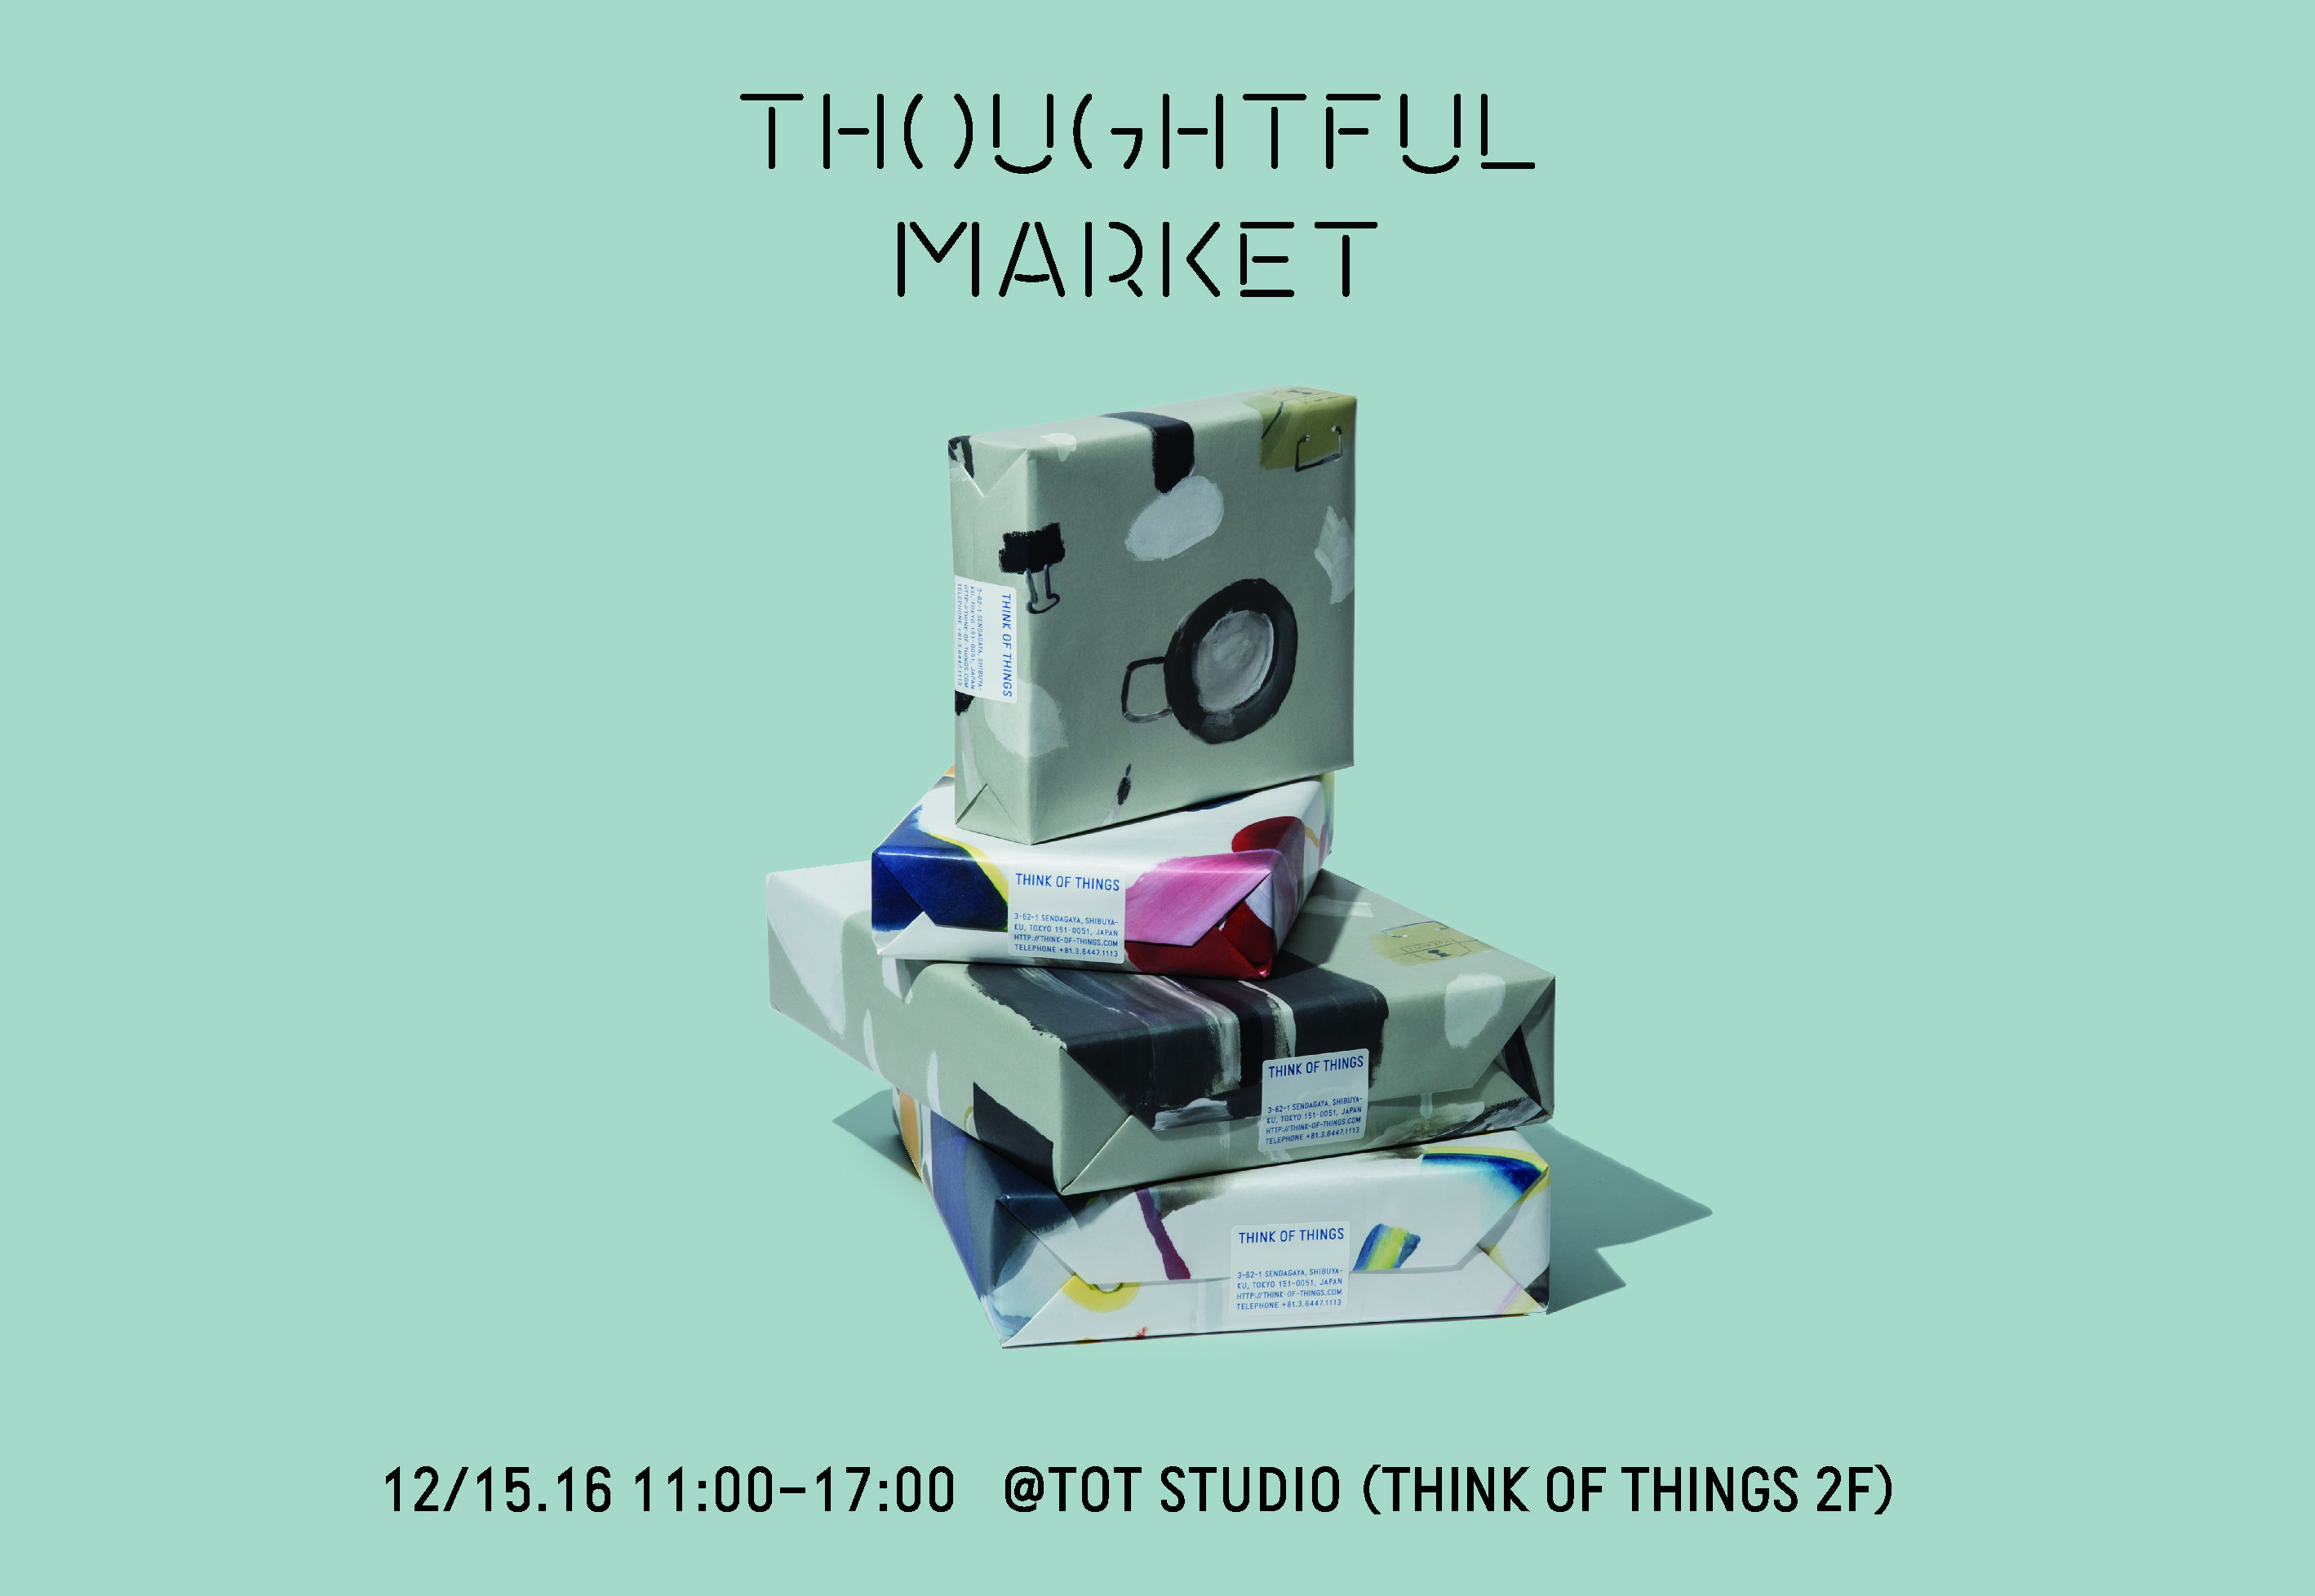 181126_thoughtfullmarket_6_ページ_1